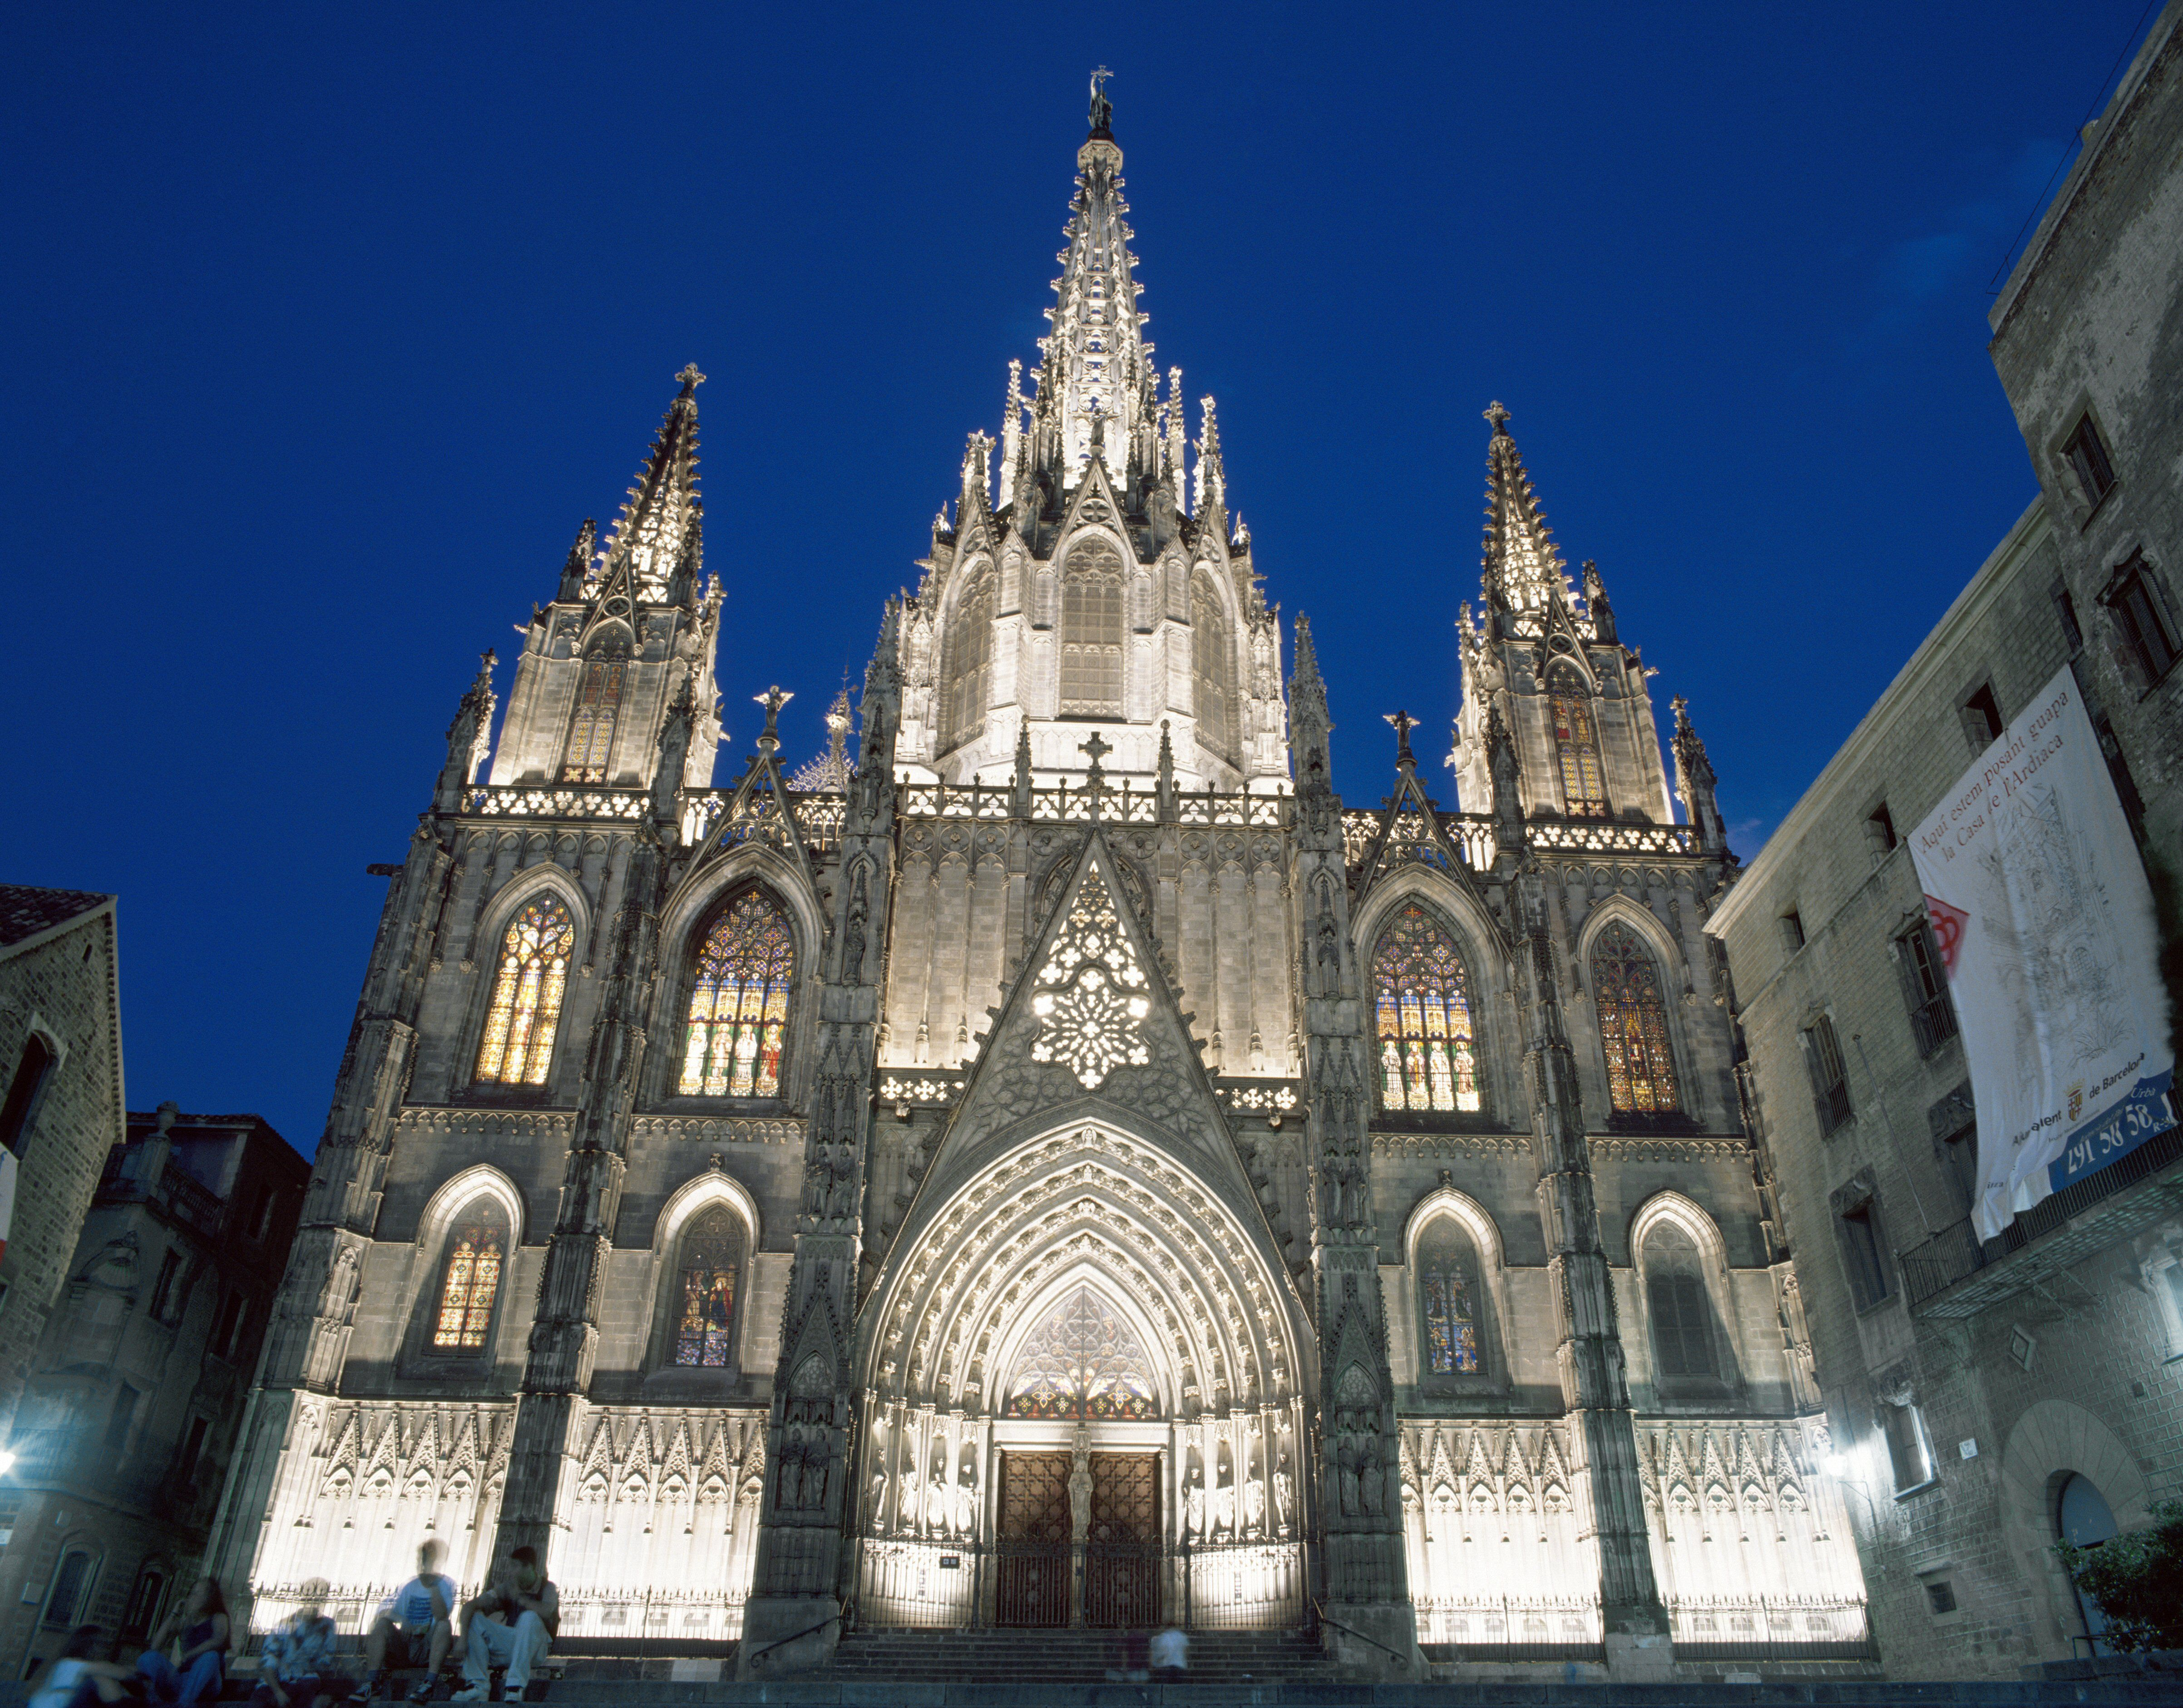 Lighted Spires and Gothic Details of Barcelona Cathedral, night in Barcelona, Spain